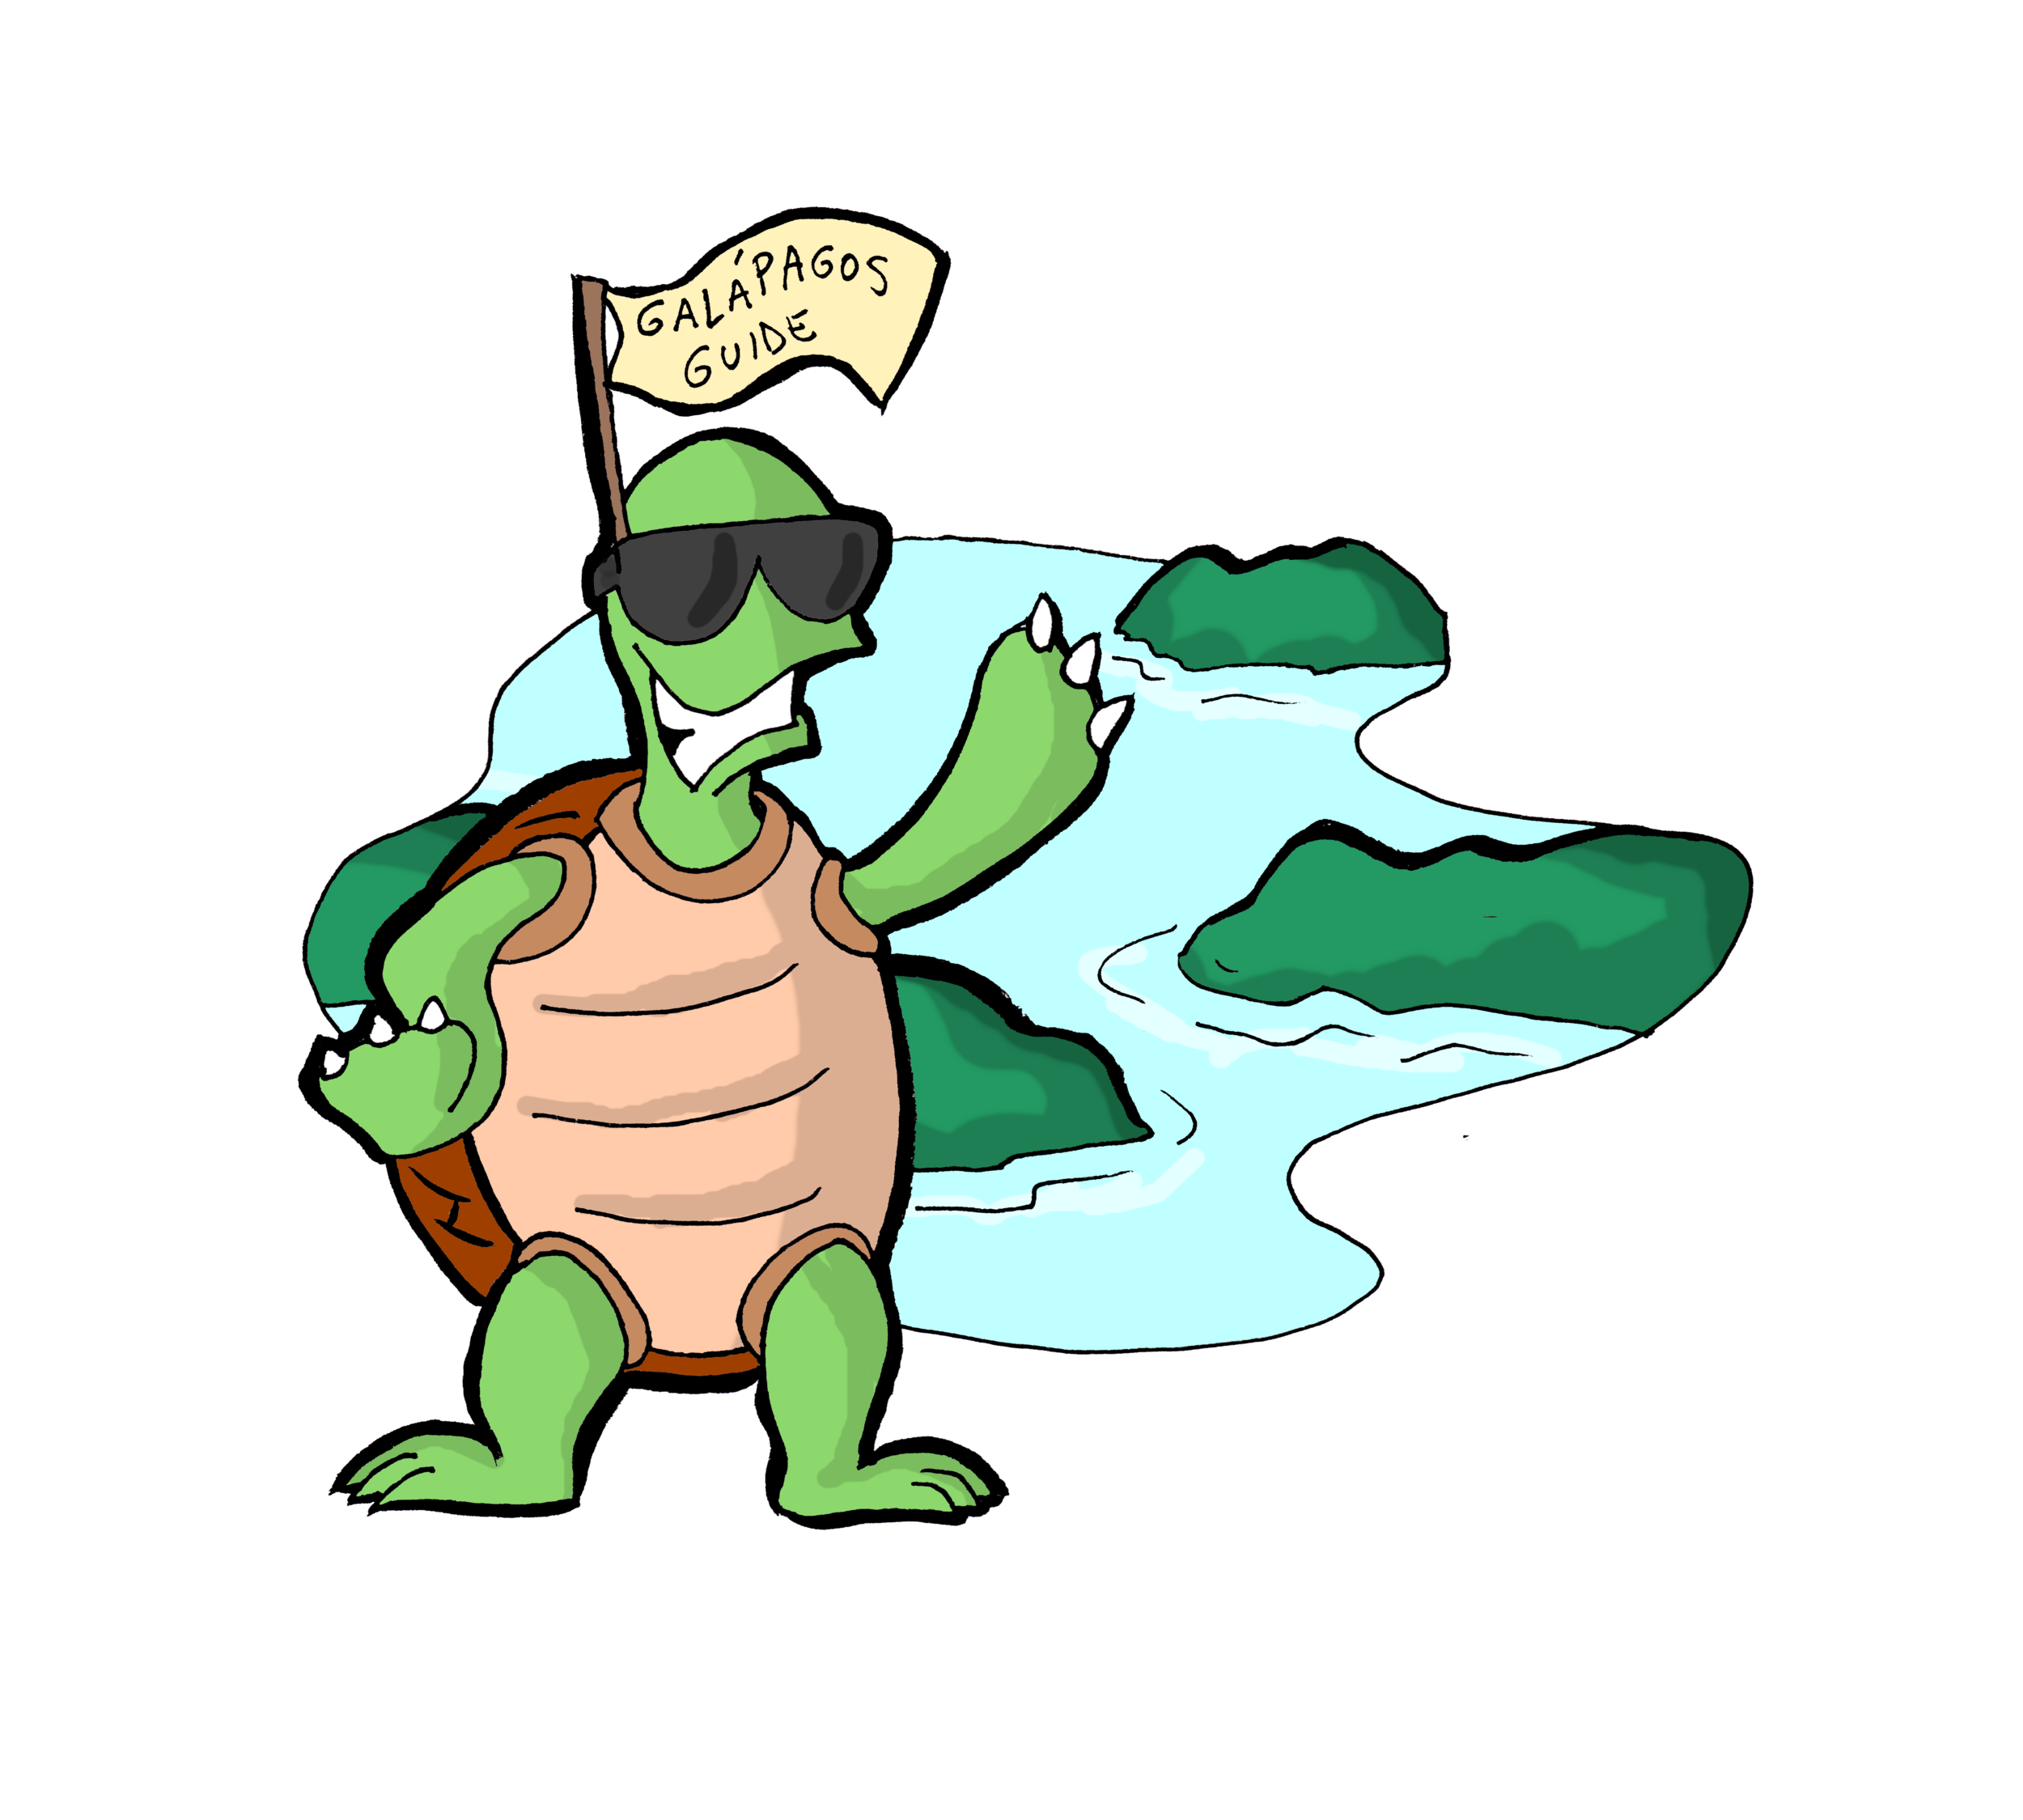 Tortoise cat clipart png freeuse library Galapagos Tortoise Clipart at GetDrawings.com | Free for personal ... png freeuse library